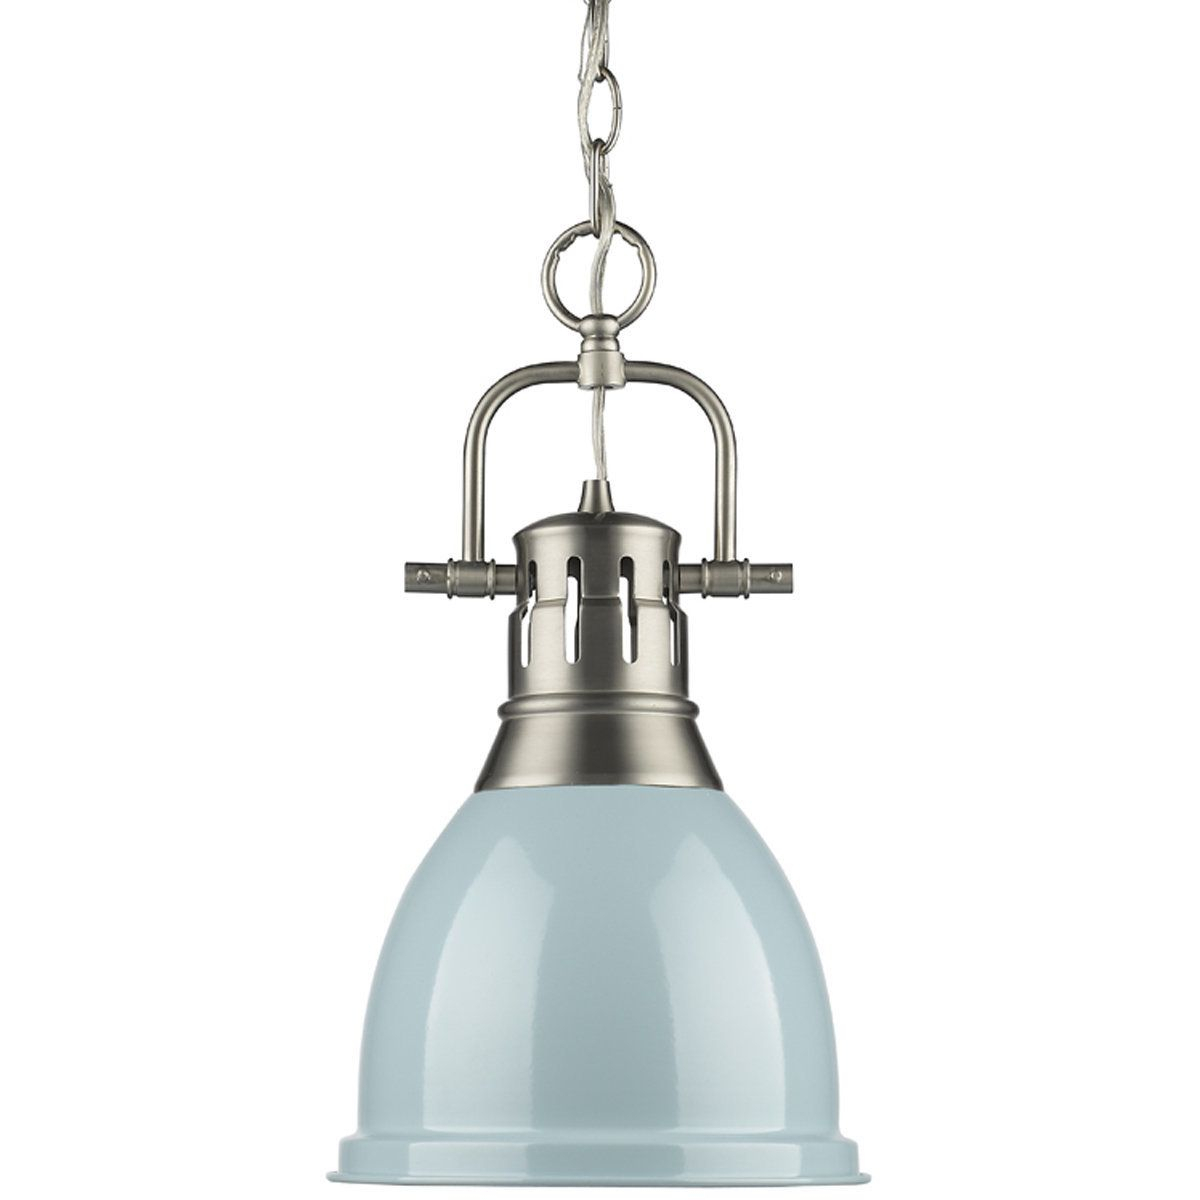 Classic Dome Shade Pendant Light With Chain – Small | Dining In Adriana Black 1 Light Single Dome Pendants (Image 9 of 30)